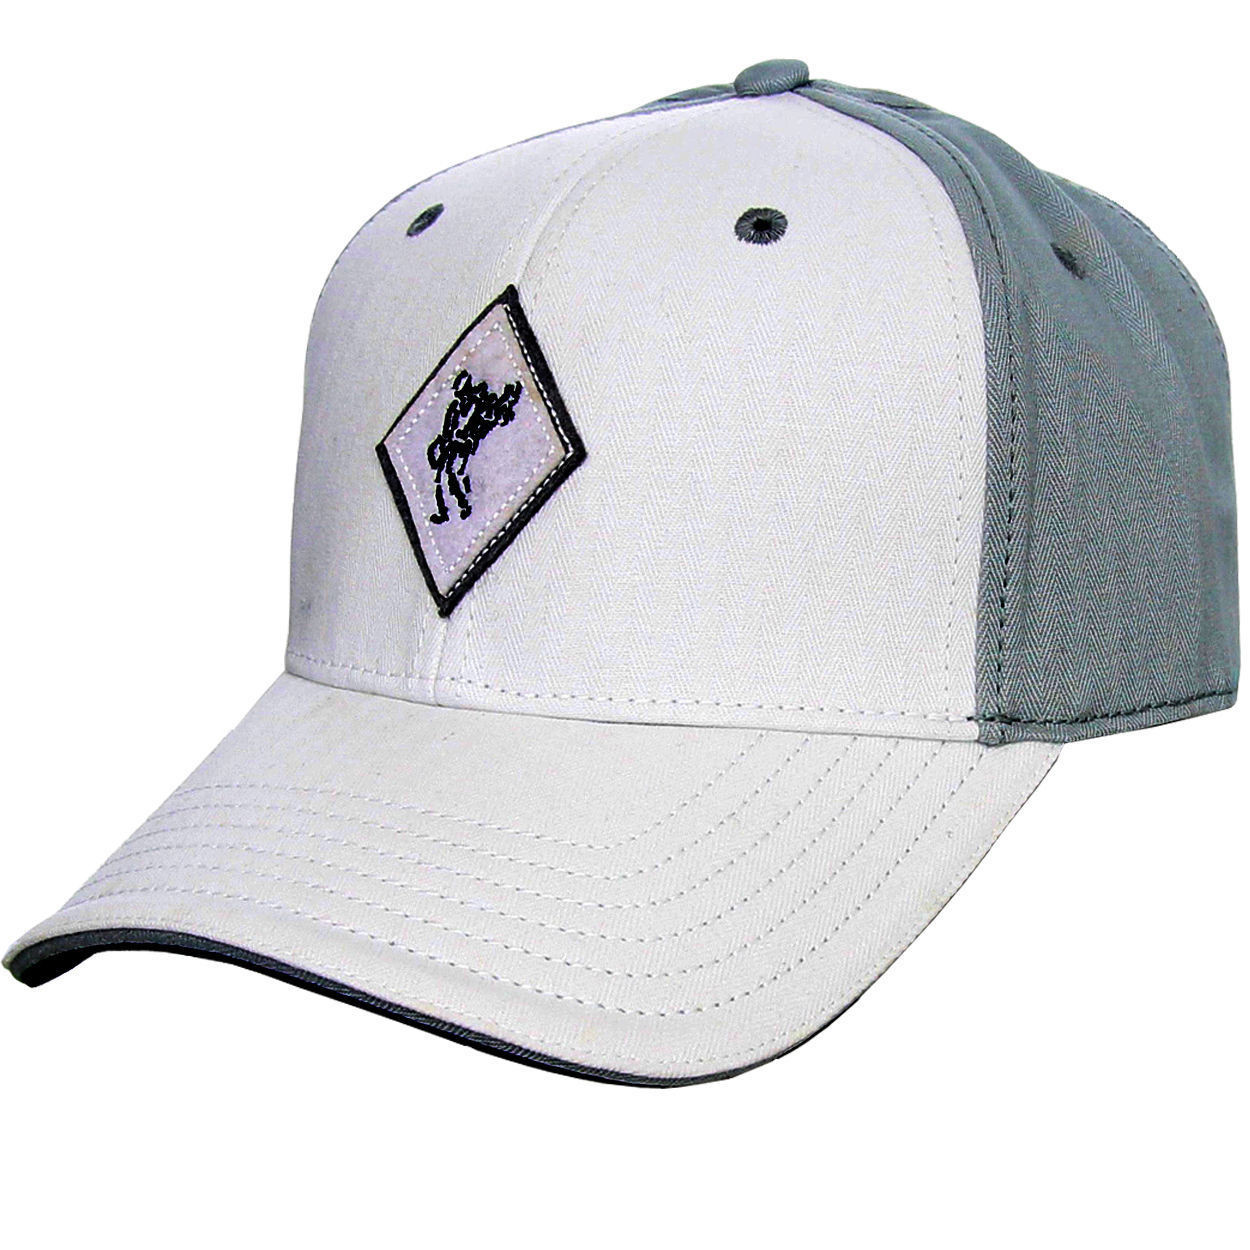 Discounted Branded Golf hats 4b773894bec